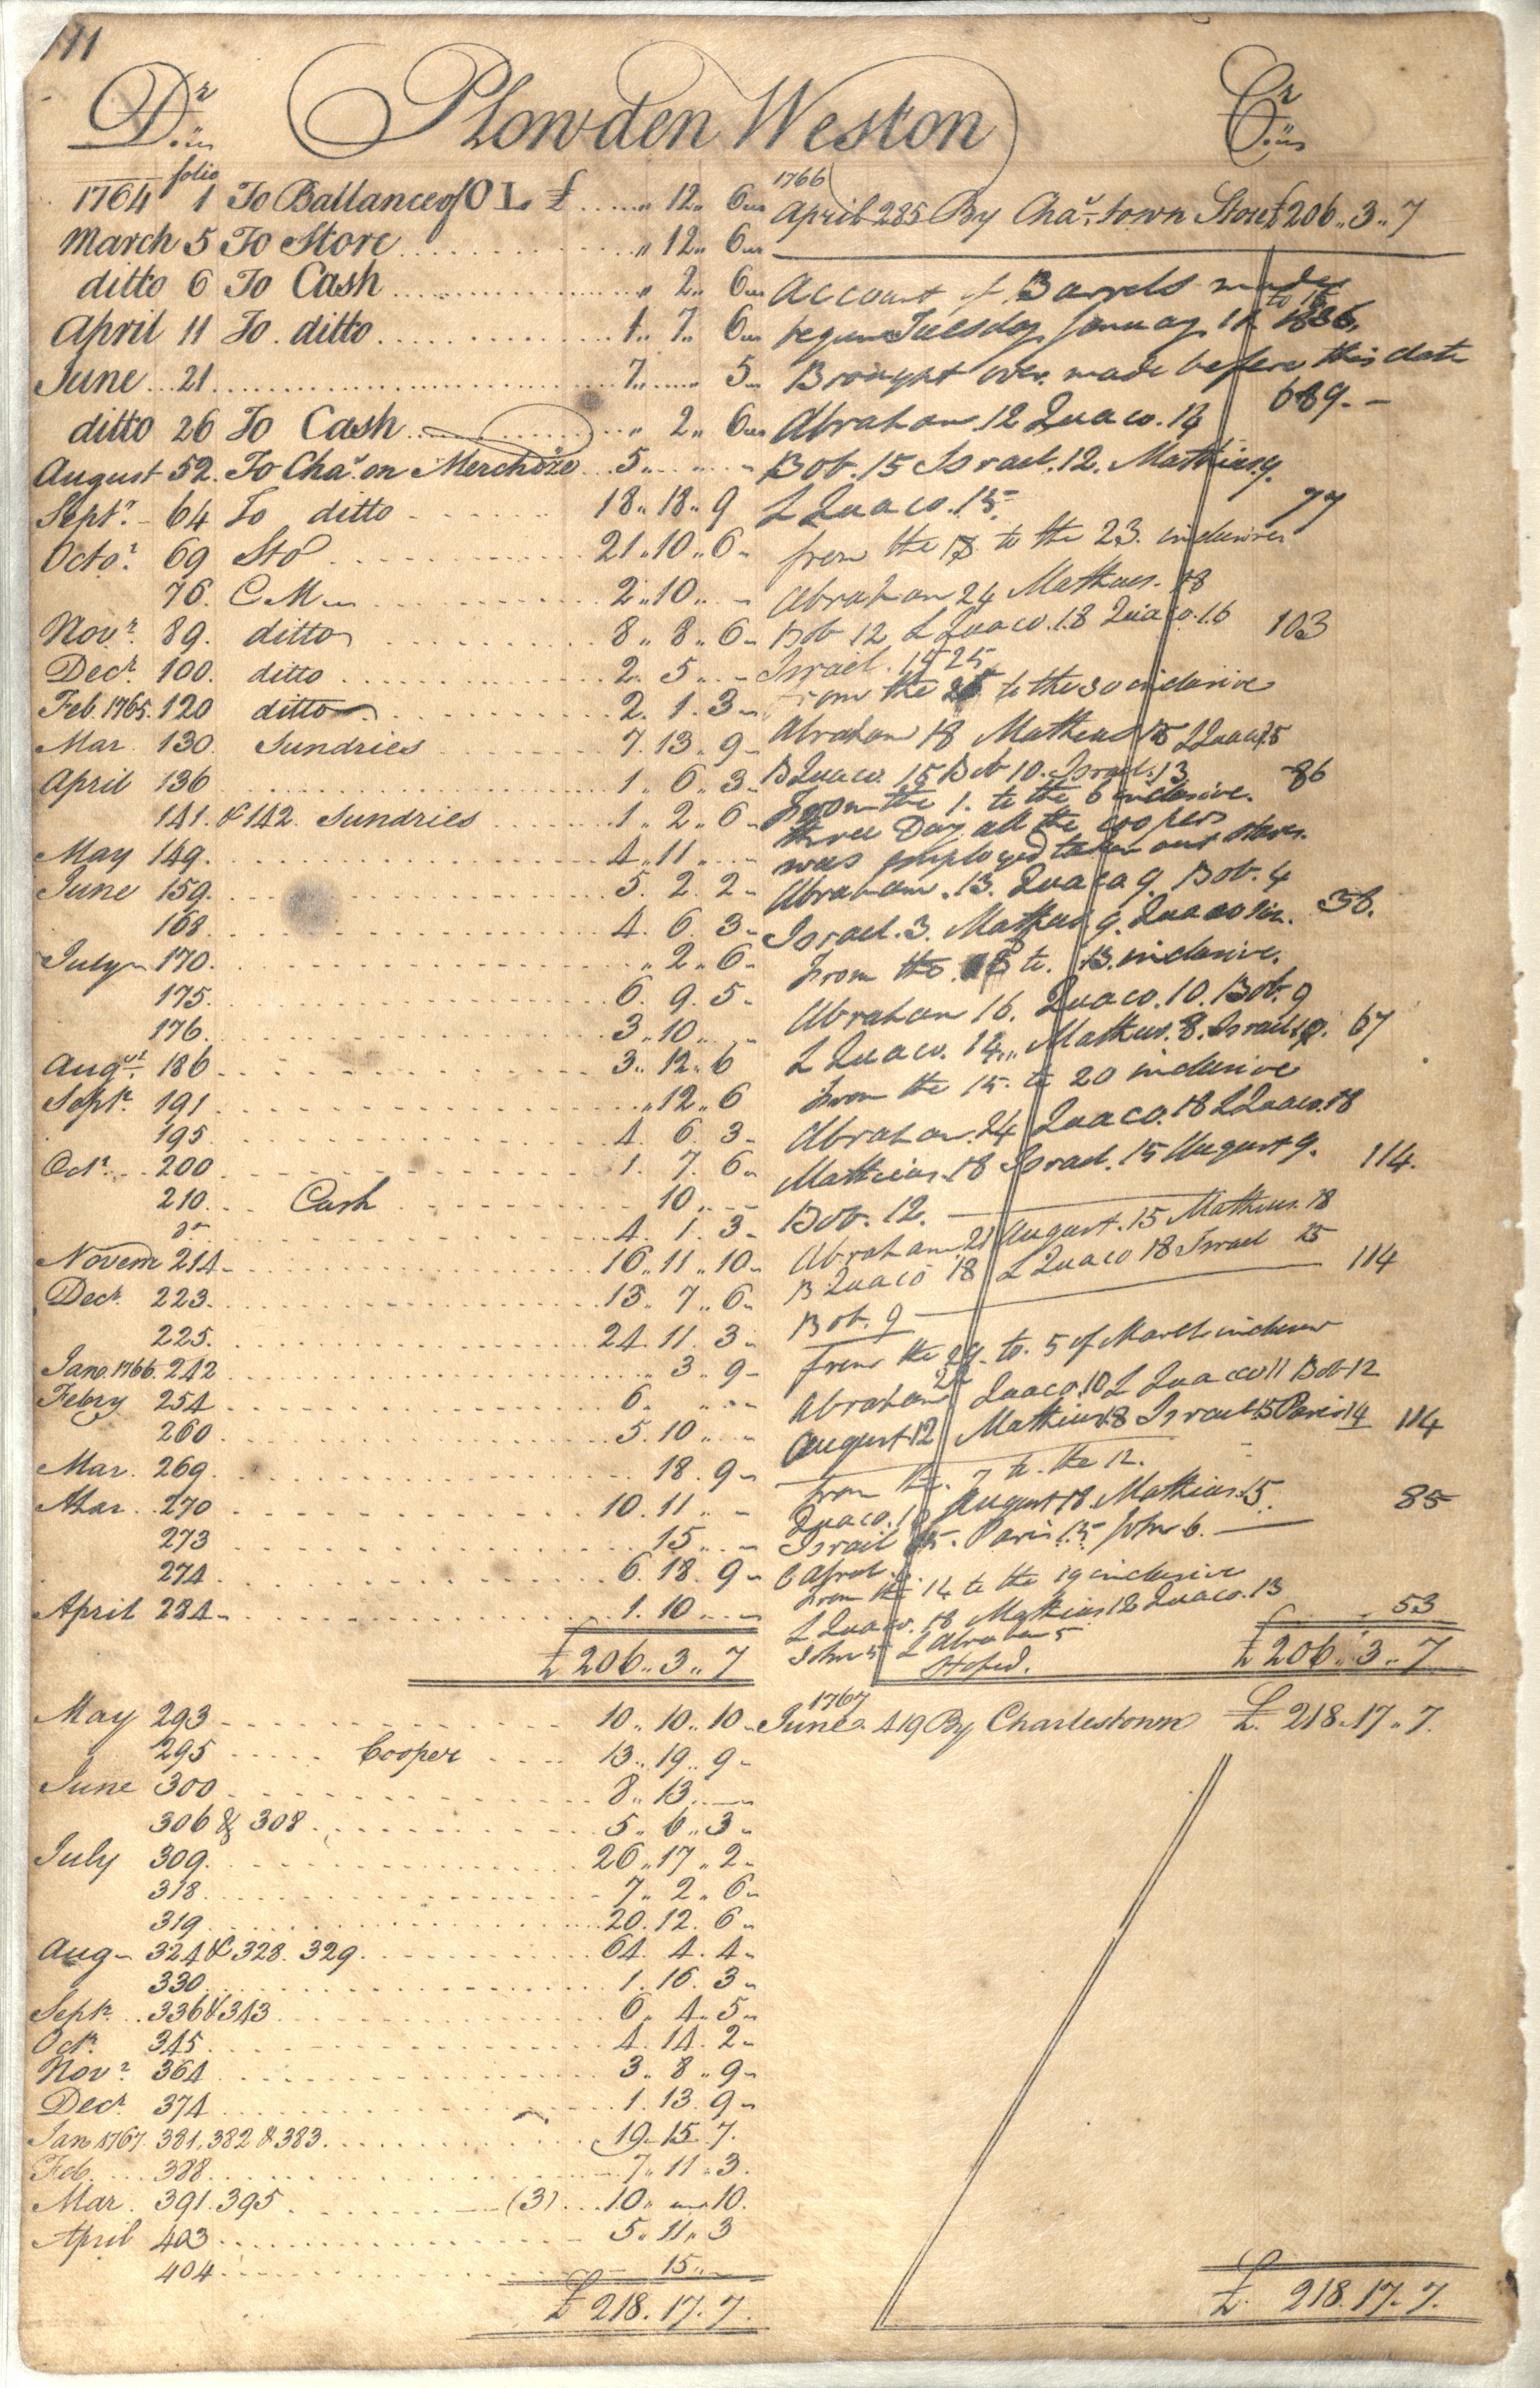 Plowden Weston's Business Ledger, page 111